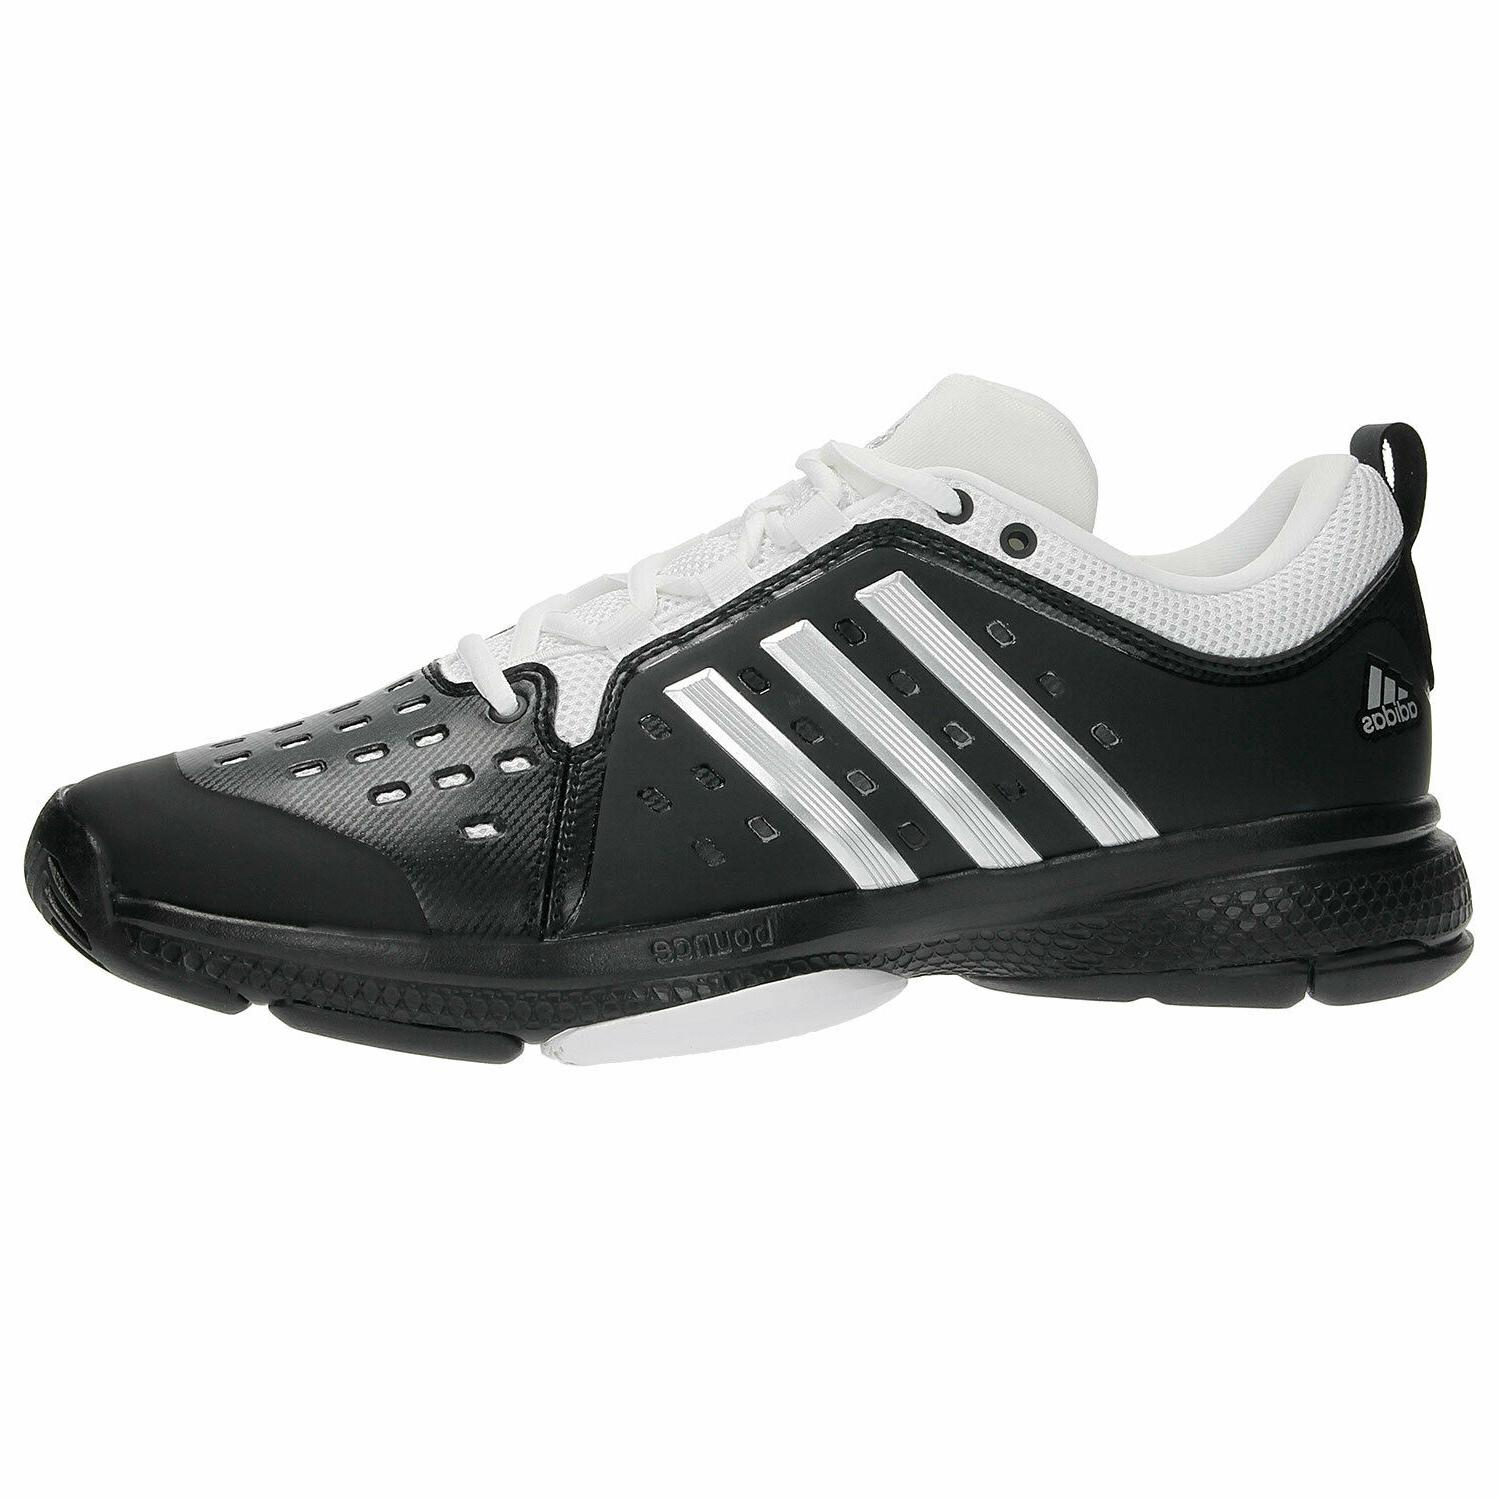 ADIDAS BARRICADE CLASSIC TENNIS SHOES CG3108 $100